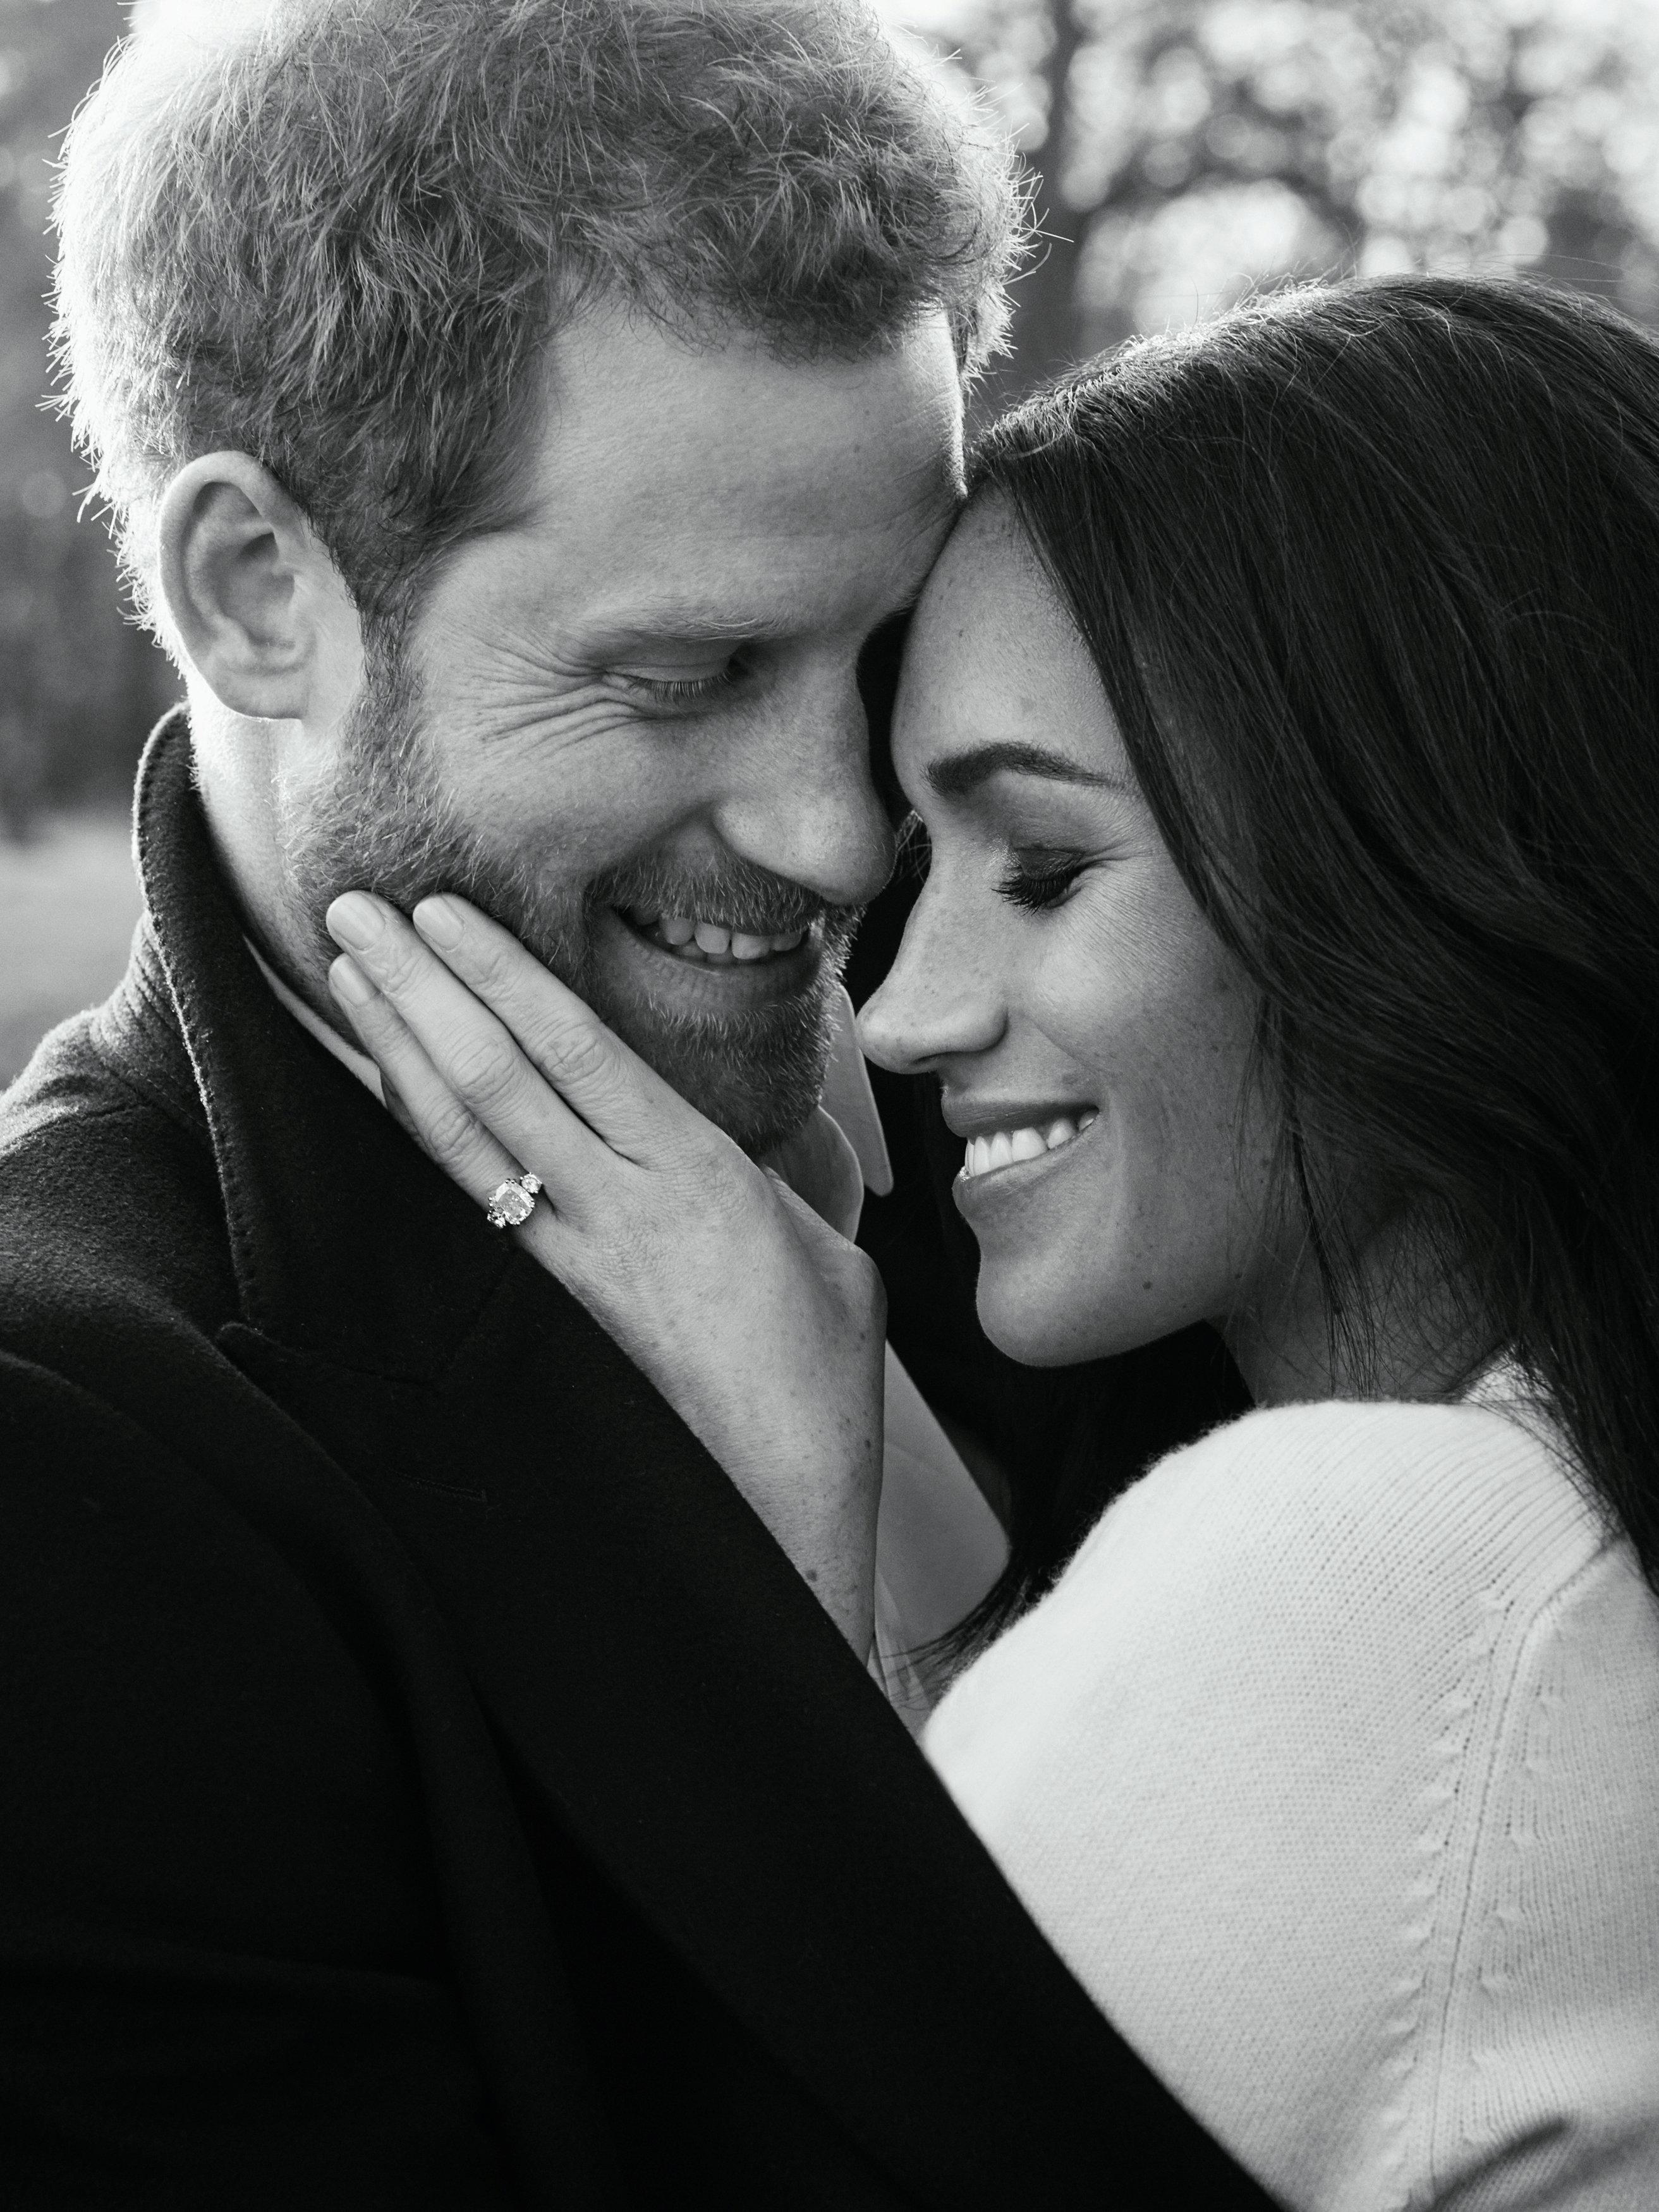 One of two official engagement photos released on December 21, 2017 by Kensington Palace of Prince Harry and Meghan Markle taken by Alexi Lubomirski at Frogmore House in Windsor, Britain. Picture taken in the week commencing December 17, 2017. REUTERS/Alexi Lubomirski/Pool ATTENTION EDITORS - THIS IMAGE WAS SUPPLIED BY A THIRD PARTY. NO RESALES. NO ARCHIVE.